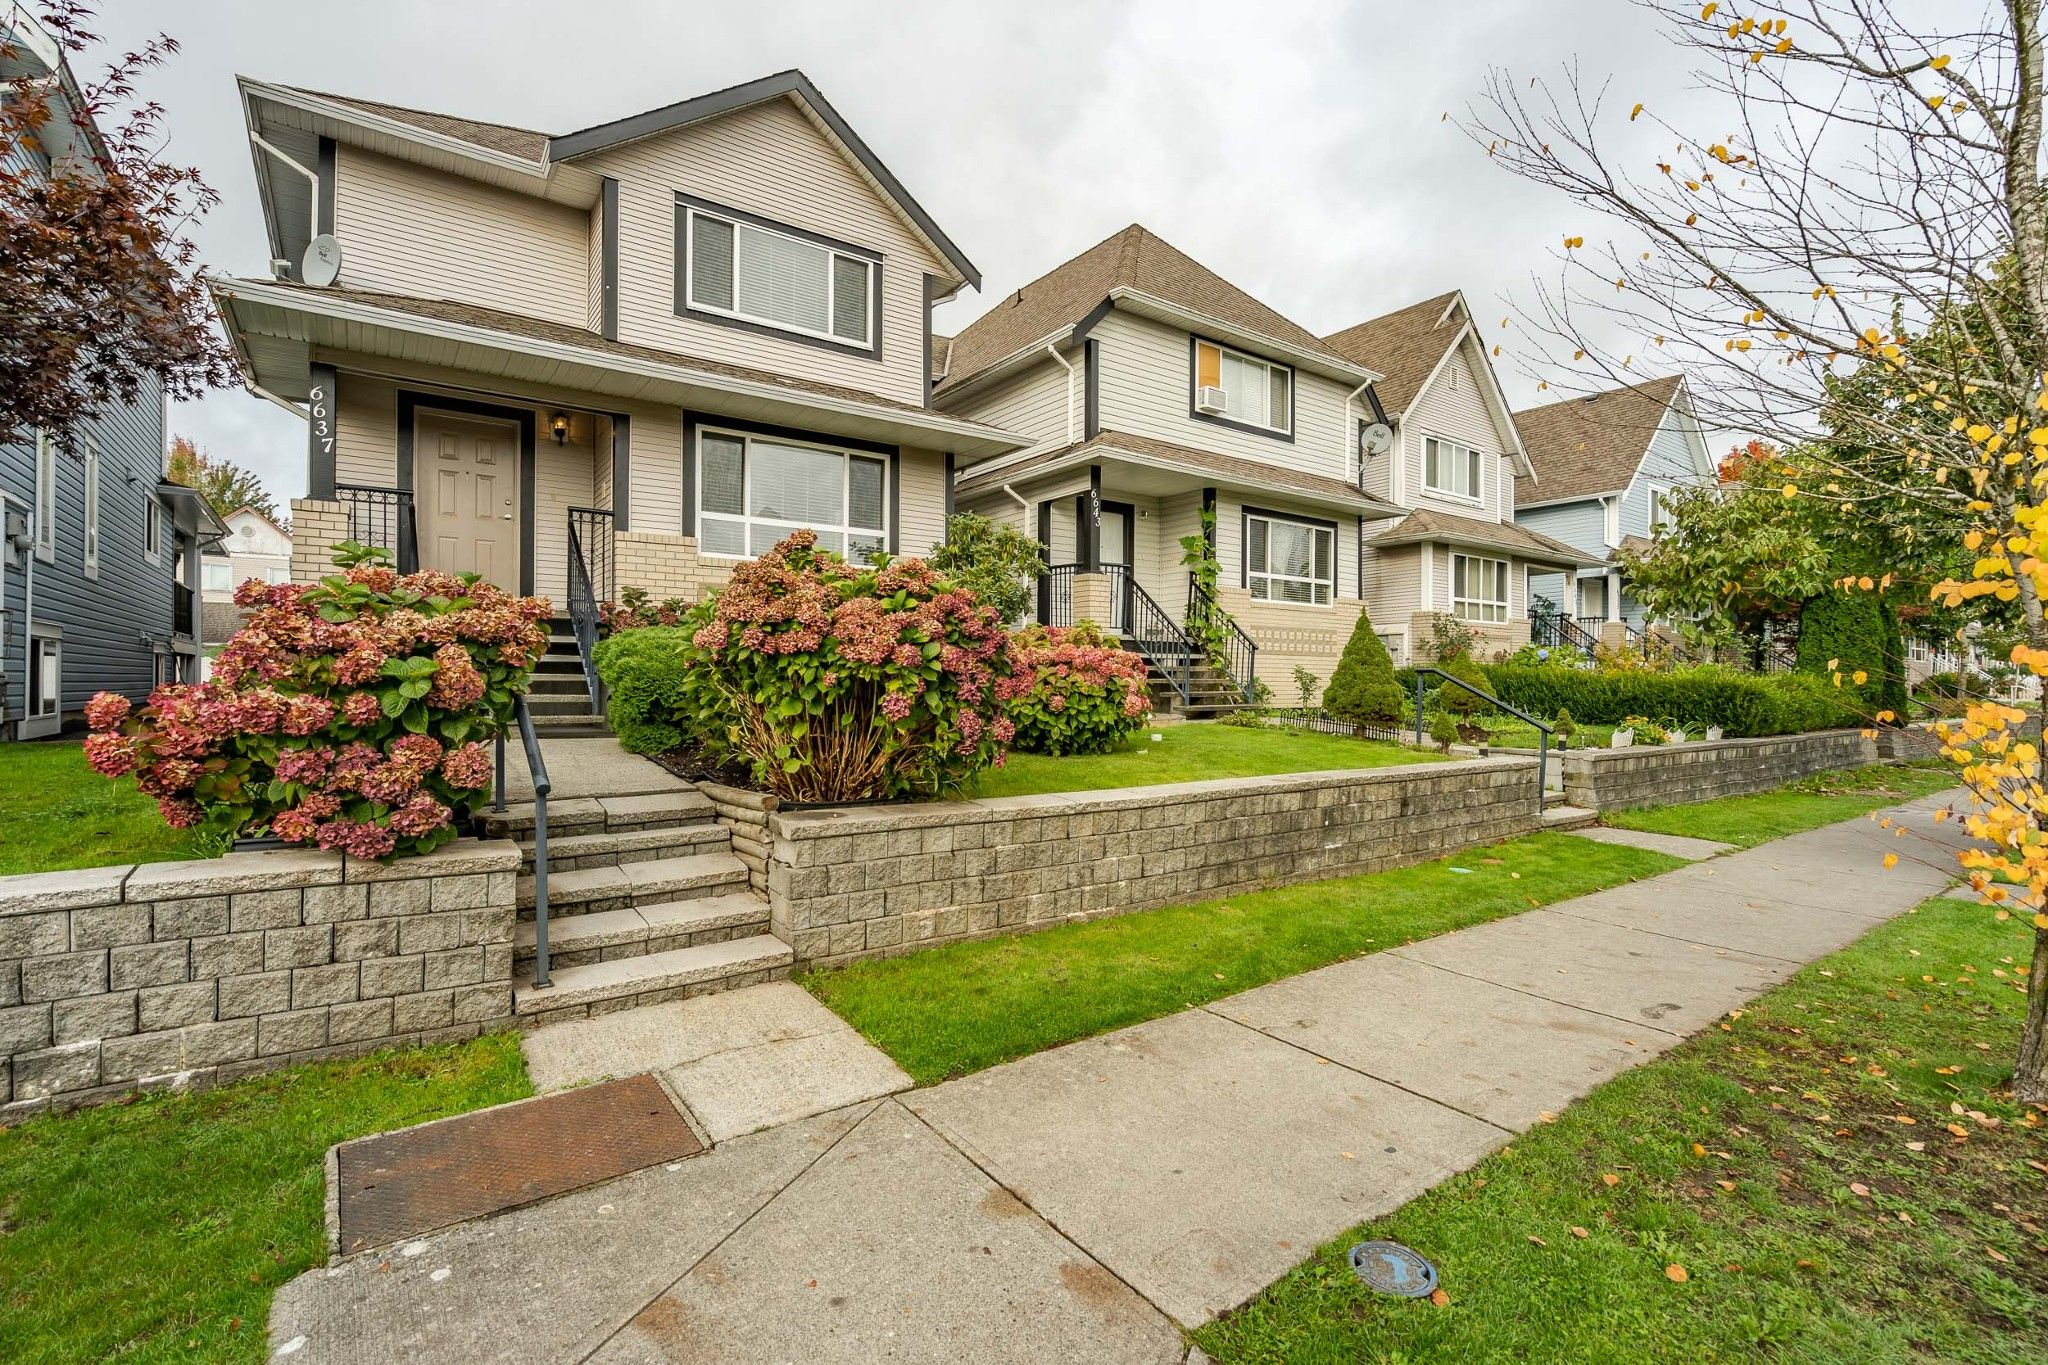 Main Photo: 6637 127 Street in Surrey: West Newton House for sale : MLS®# R2511091